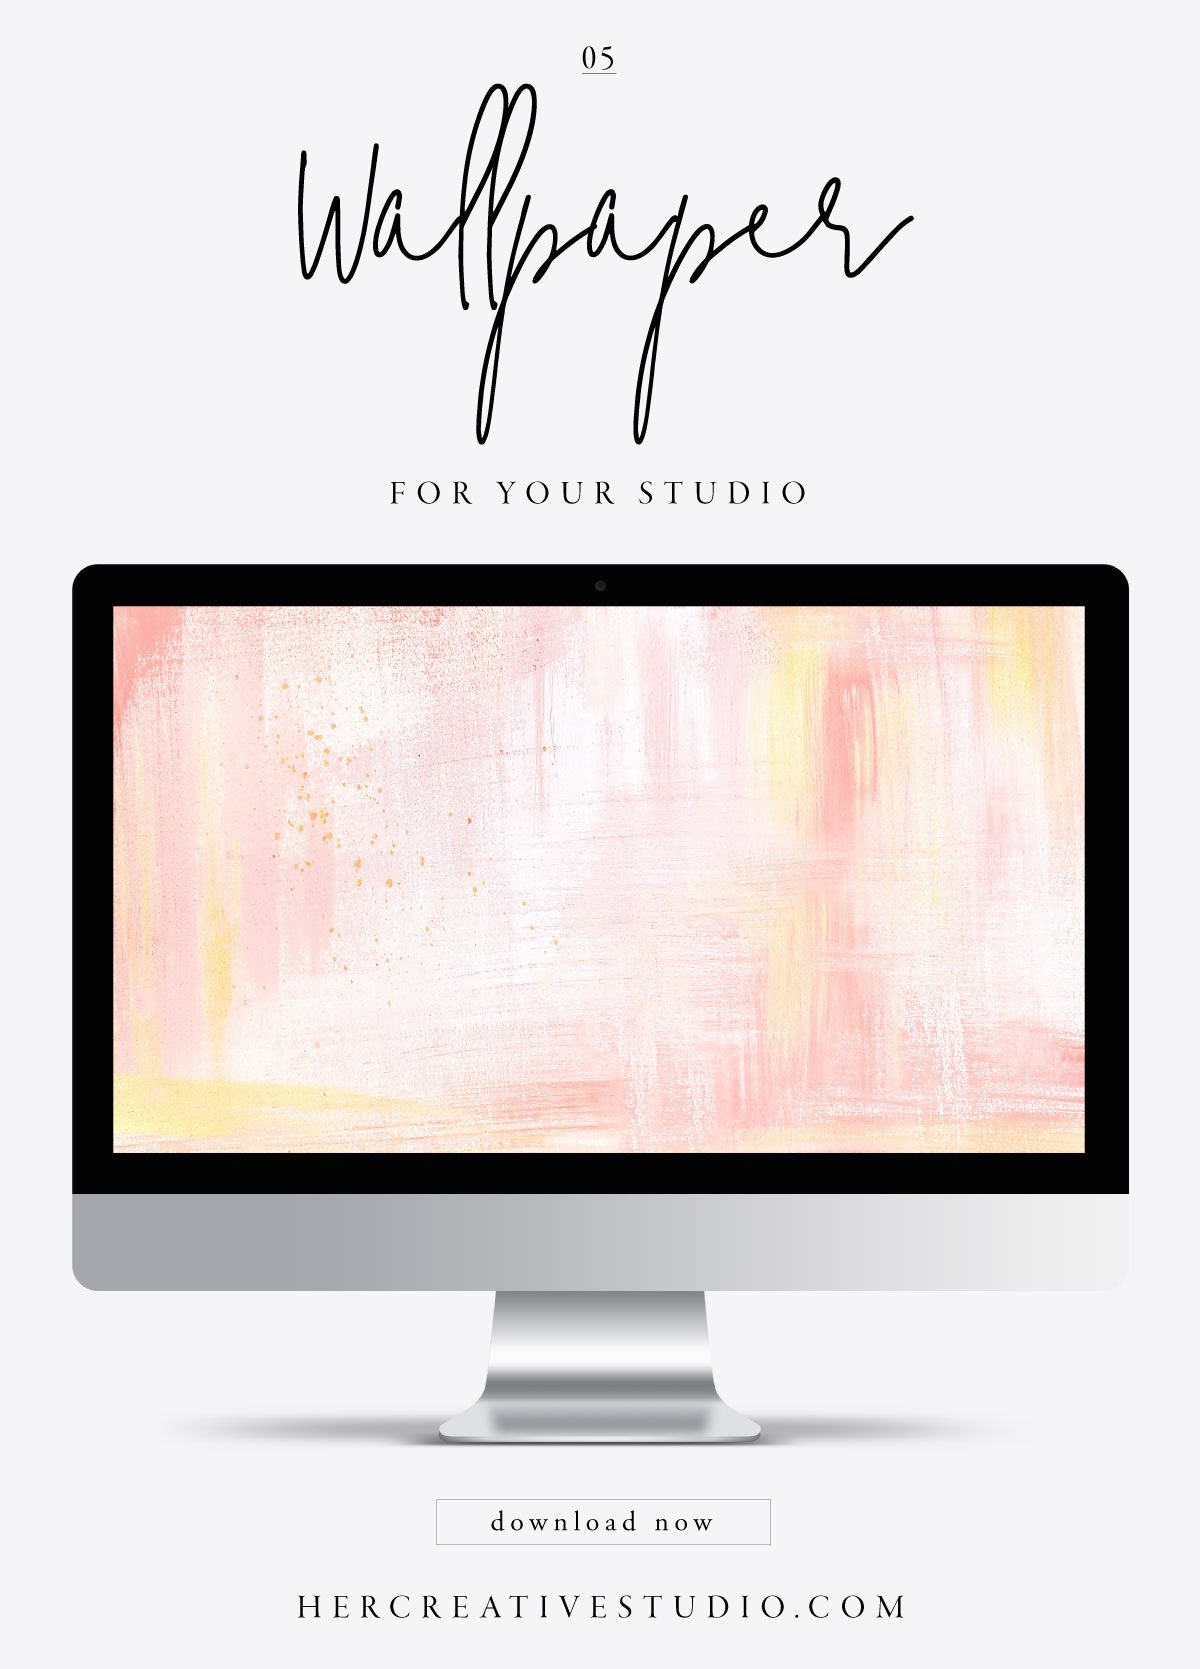 FREE Desktop Wallpaper from Her Creative Studio